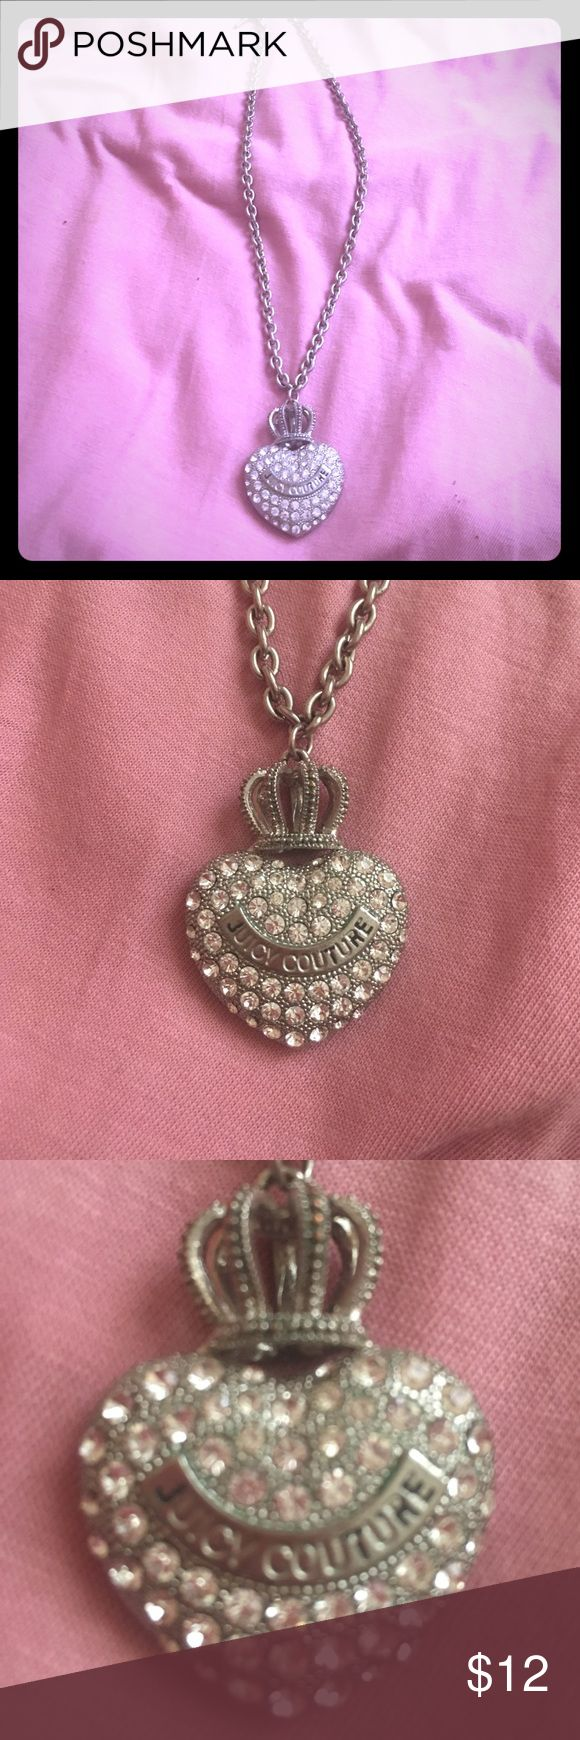 Juicy couture crystal heart chain necklace Juicy couture chain necklace crystals and crown piece. The black ink inside of the juicy couture wording is faded. Beautiful necklace however. Juicy Couture Jewelry Necklaces